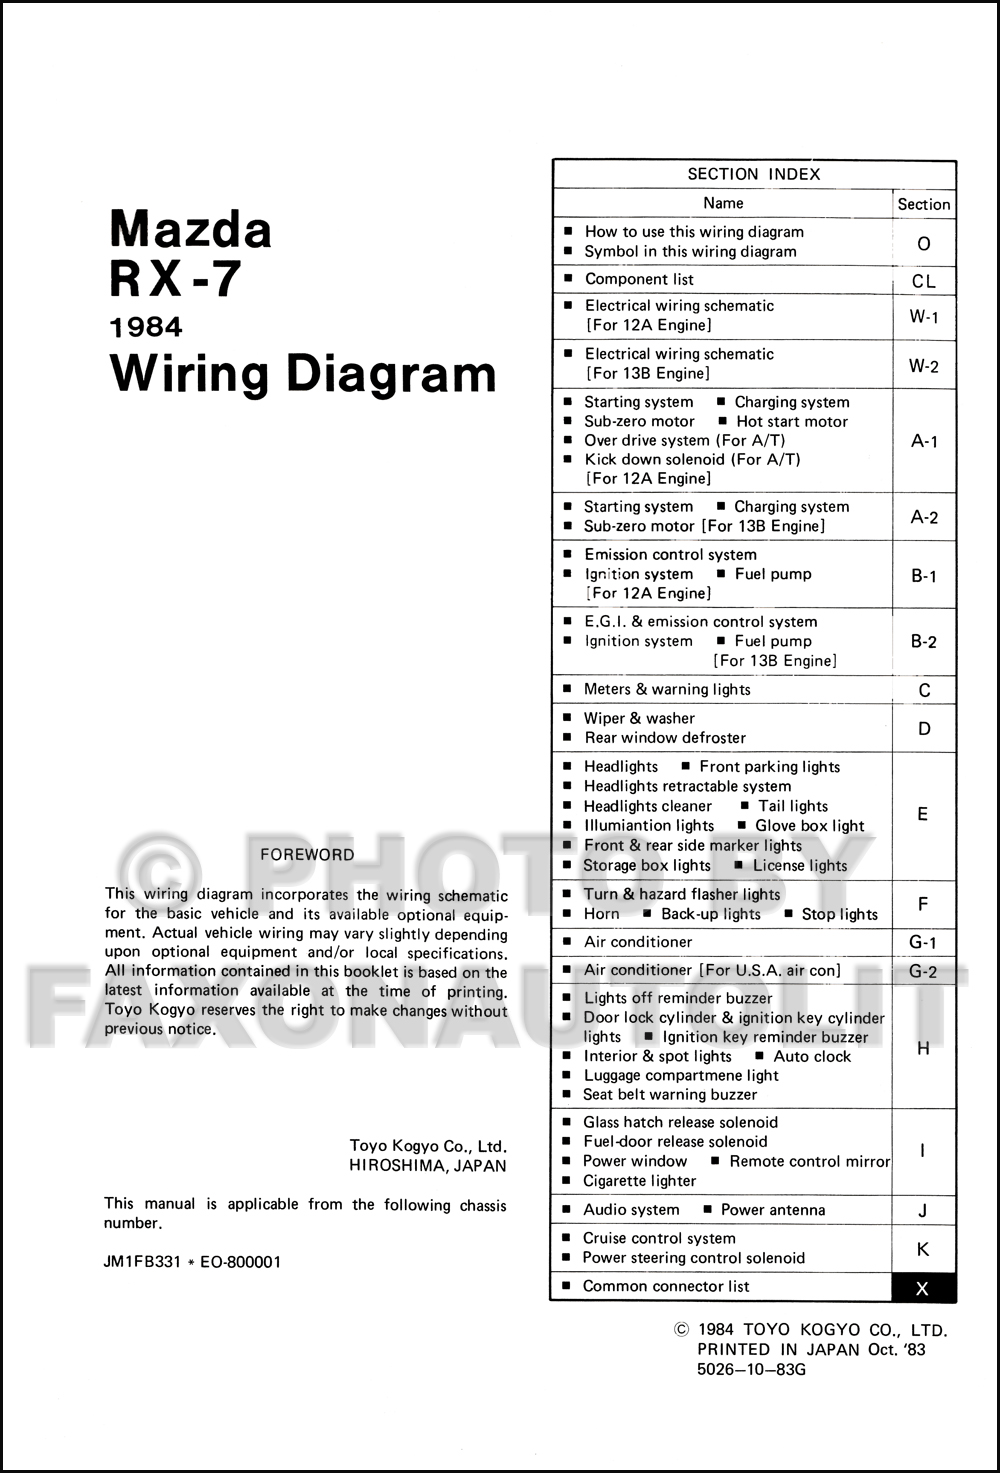 wrg 6981] mazda rx 7 wiring diagram1984 mazda rx 7 wiring diagram manual original rx7 click on thumbnail to zoom